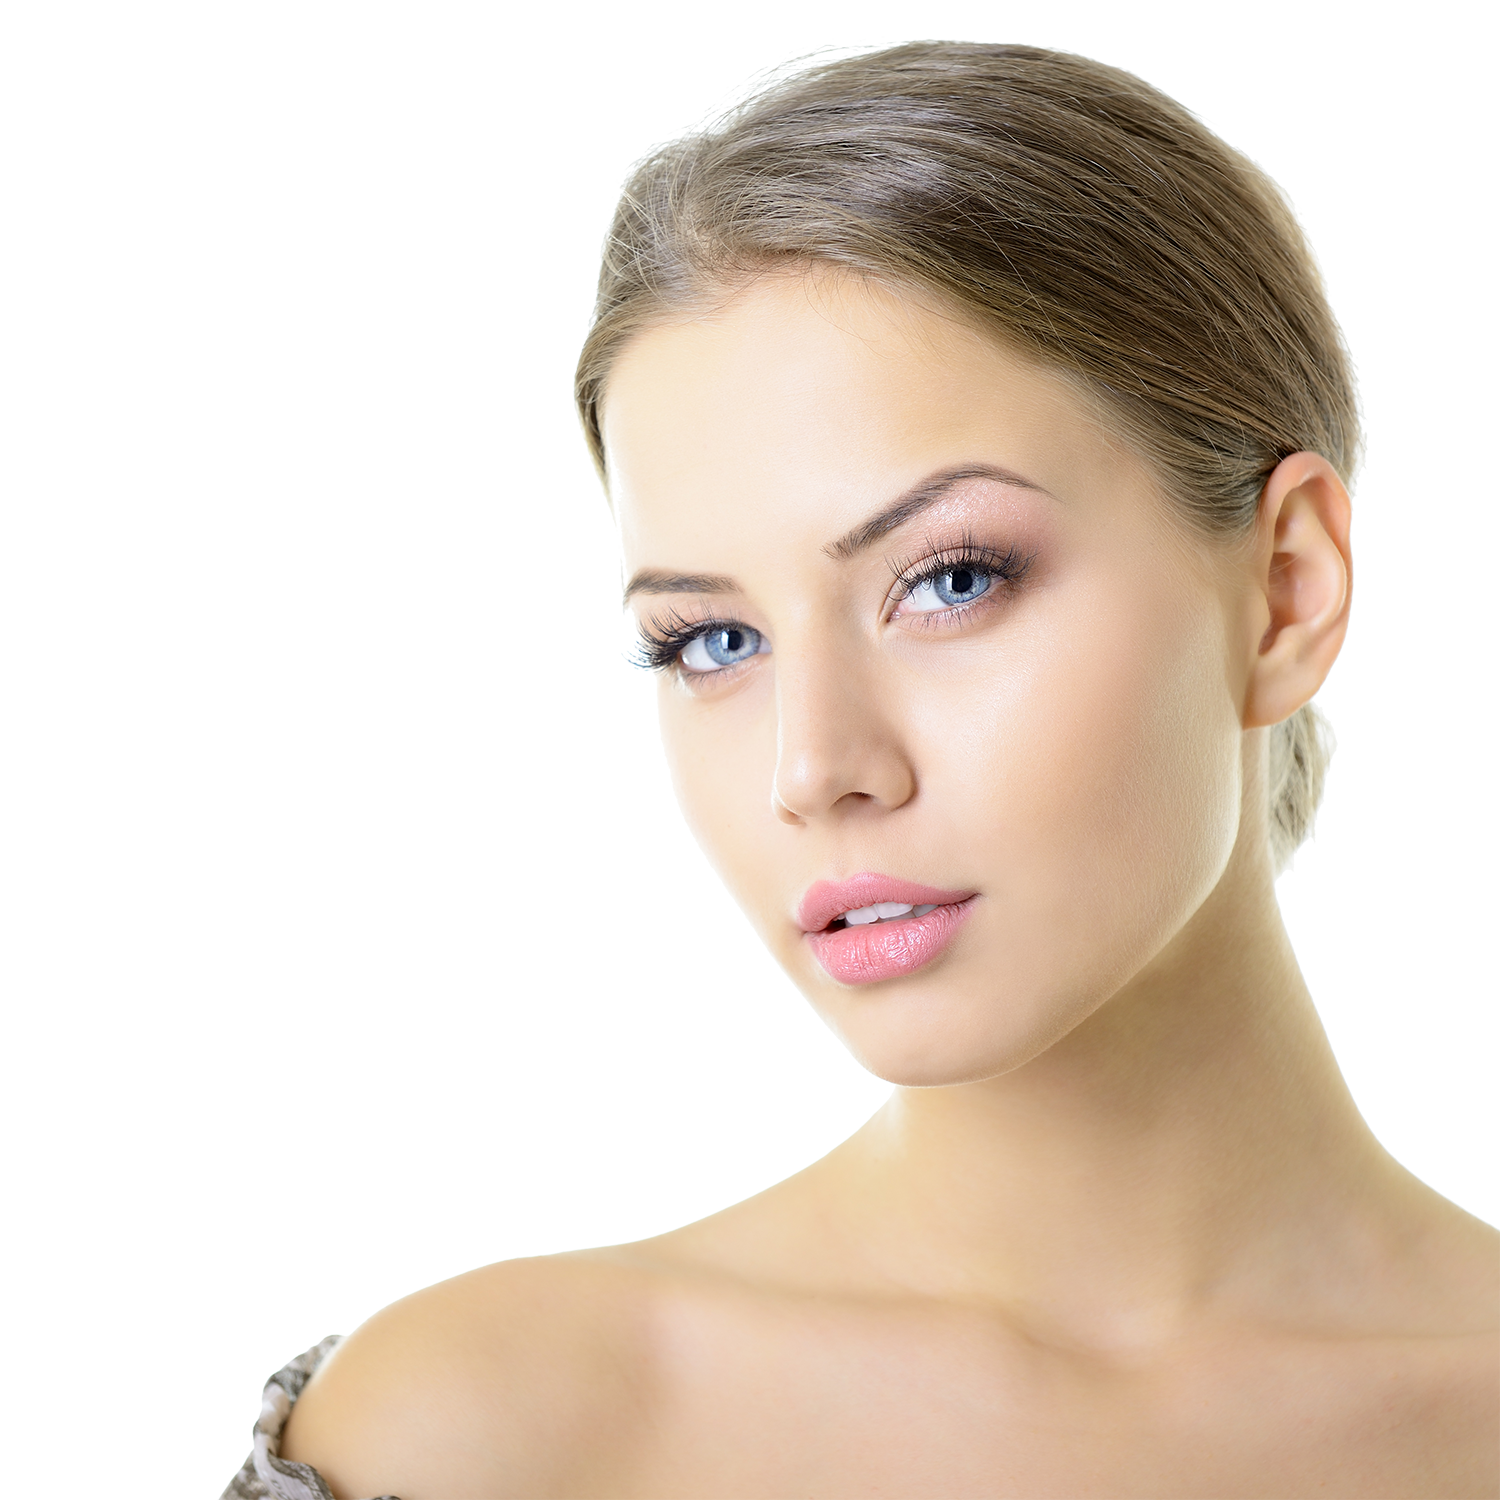 Beauty portrait of young woman with beautiful healthy face